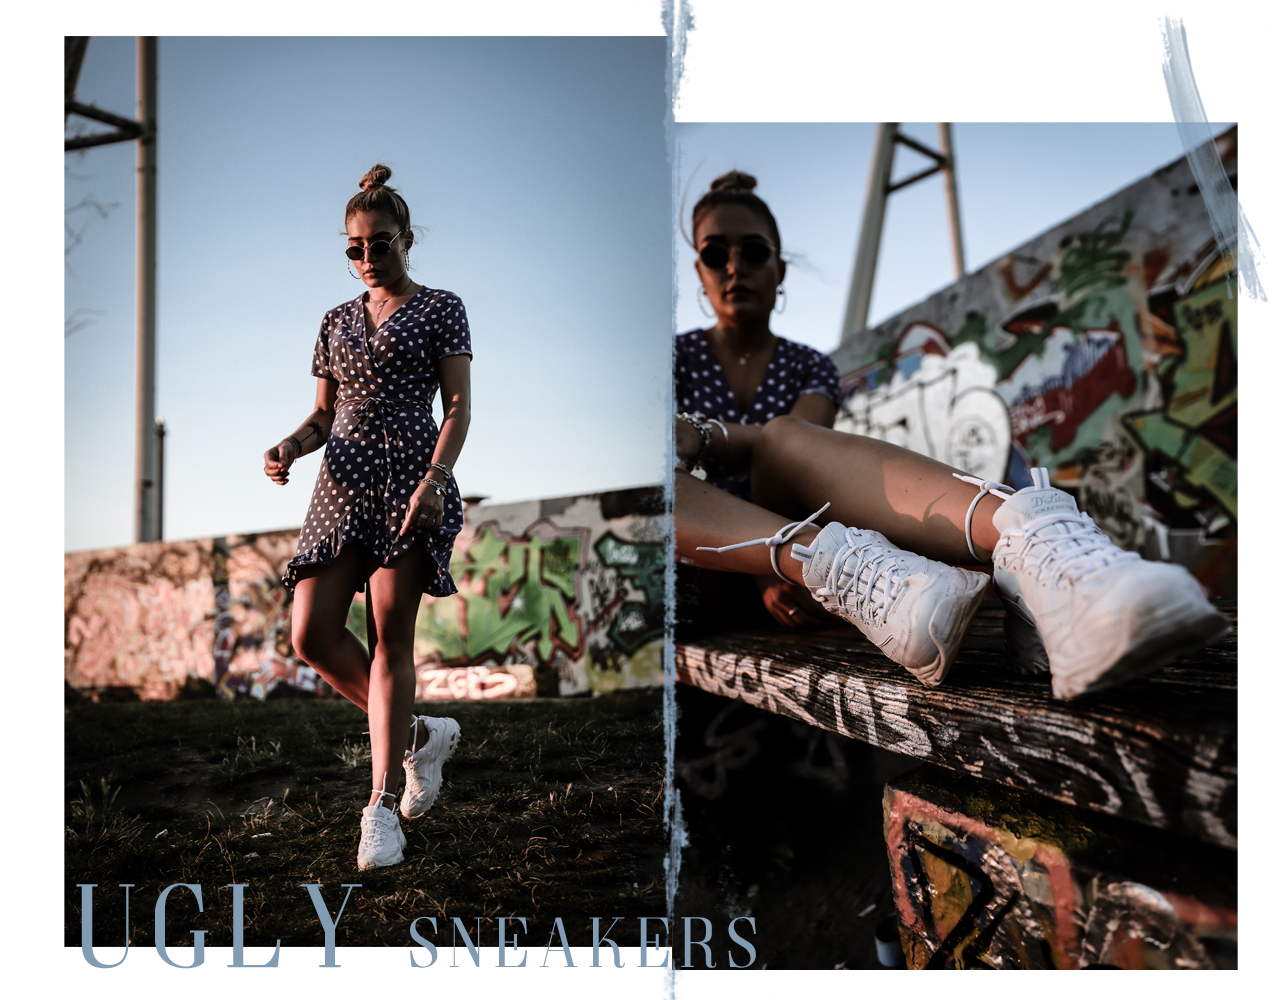 Lauralamode Skechers Ugly Sneakers Trend Shoes Chunky Sneakers Fashion Fashionblogger Berlin Munich Deutschland